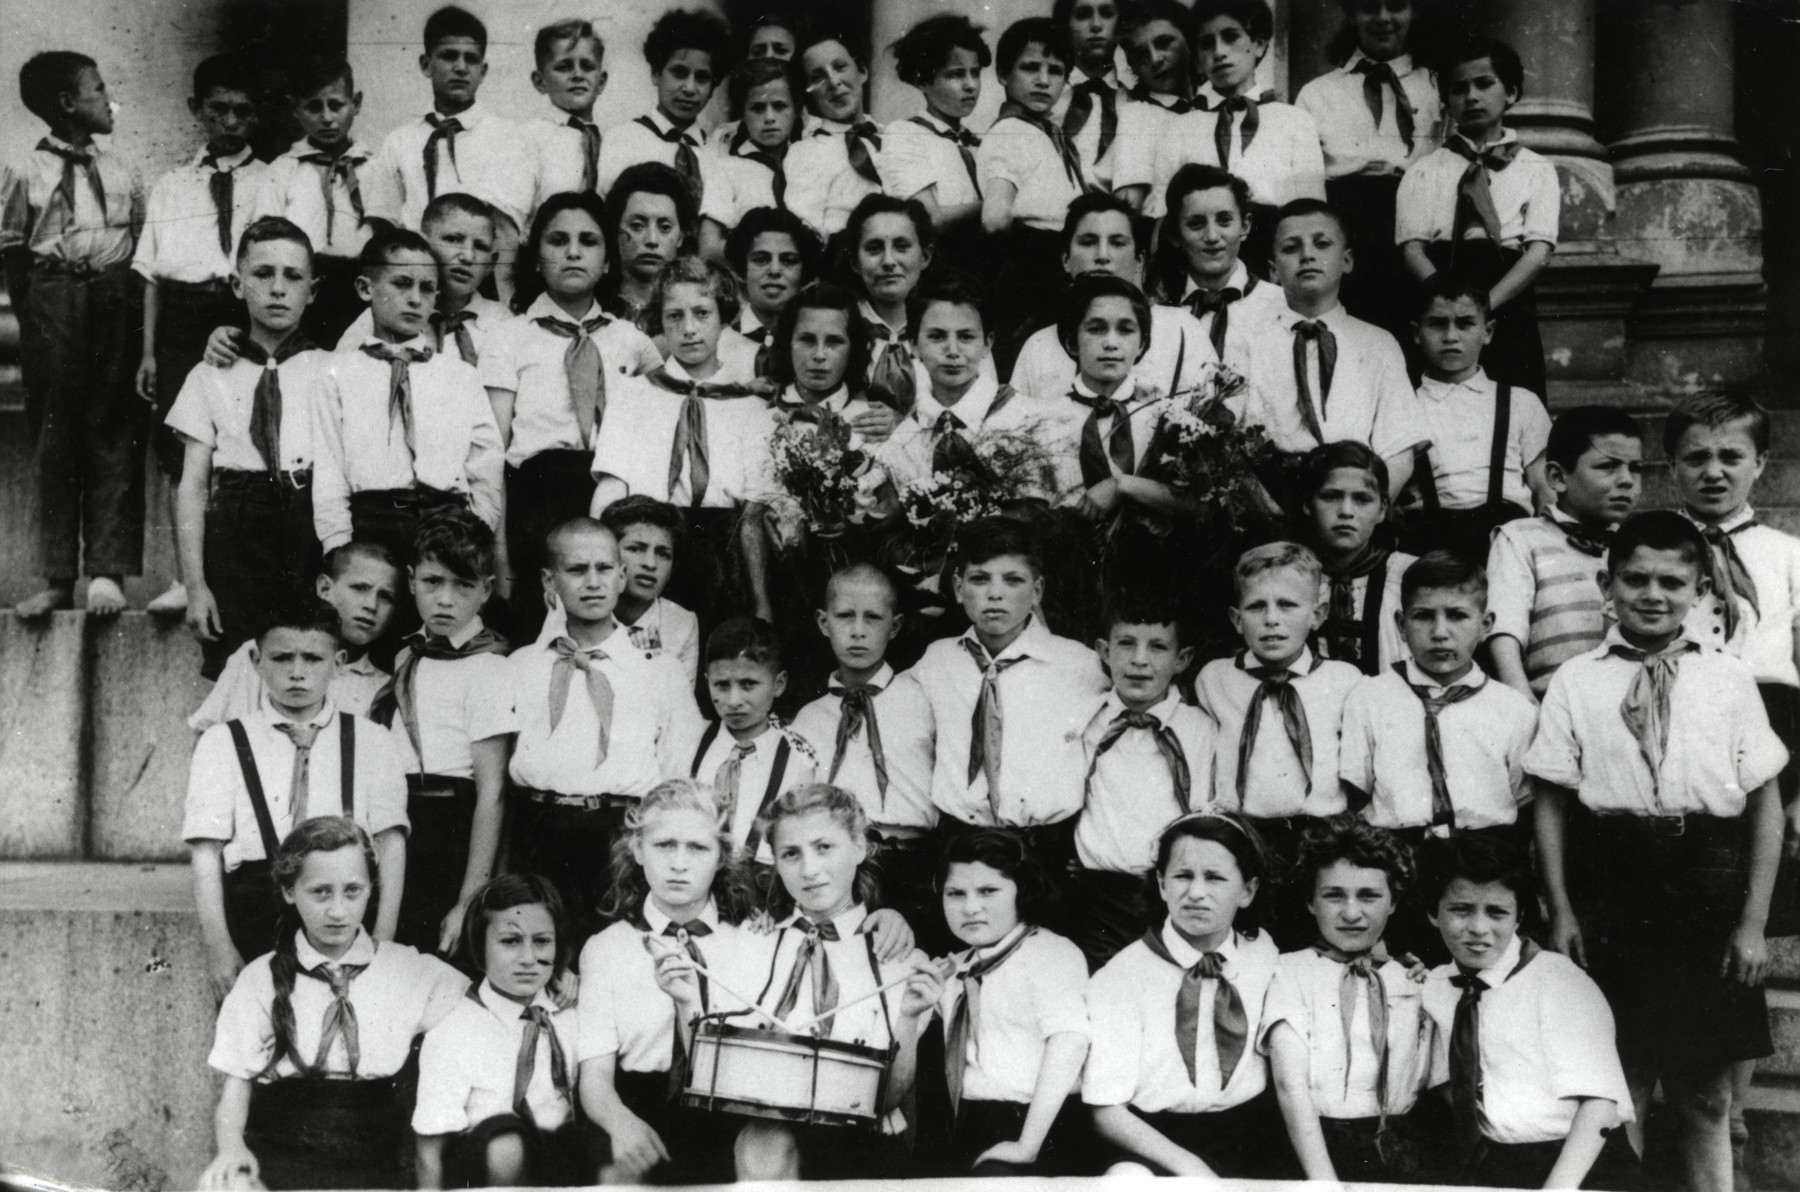 Group portrait of a postwar Jewish orphanage in Kaunas with Communist leanings.  Shalom Kaplan is pictured in the third row from the bottom.